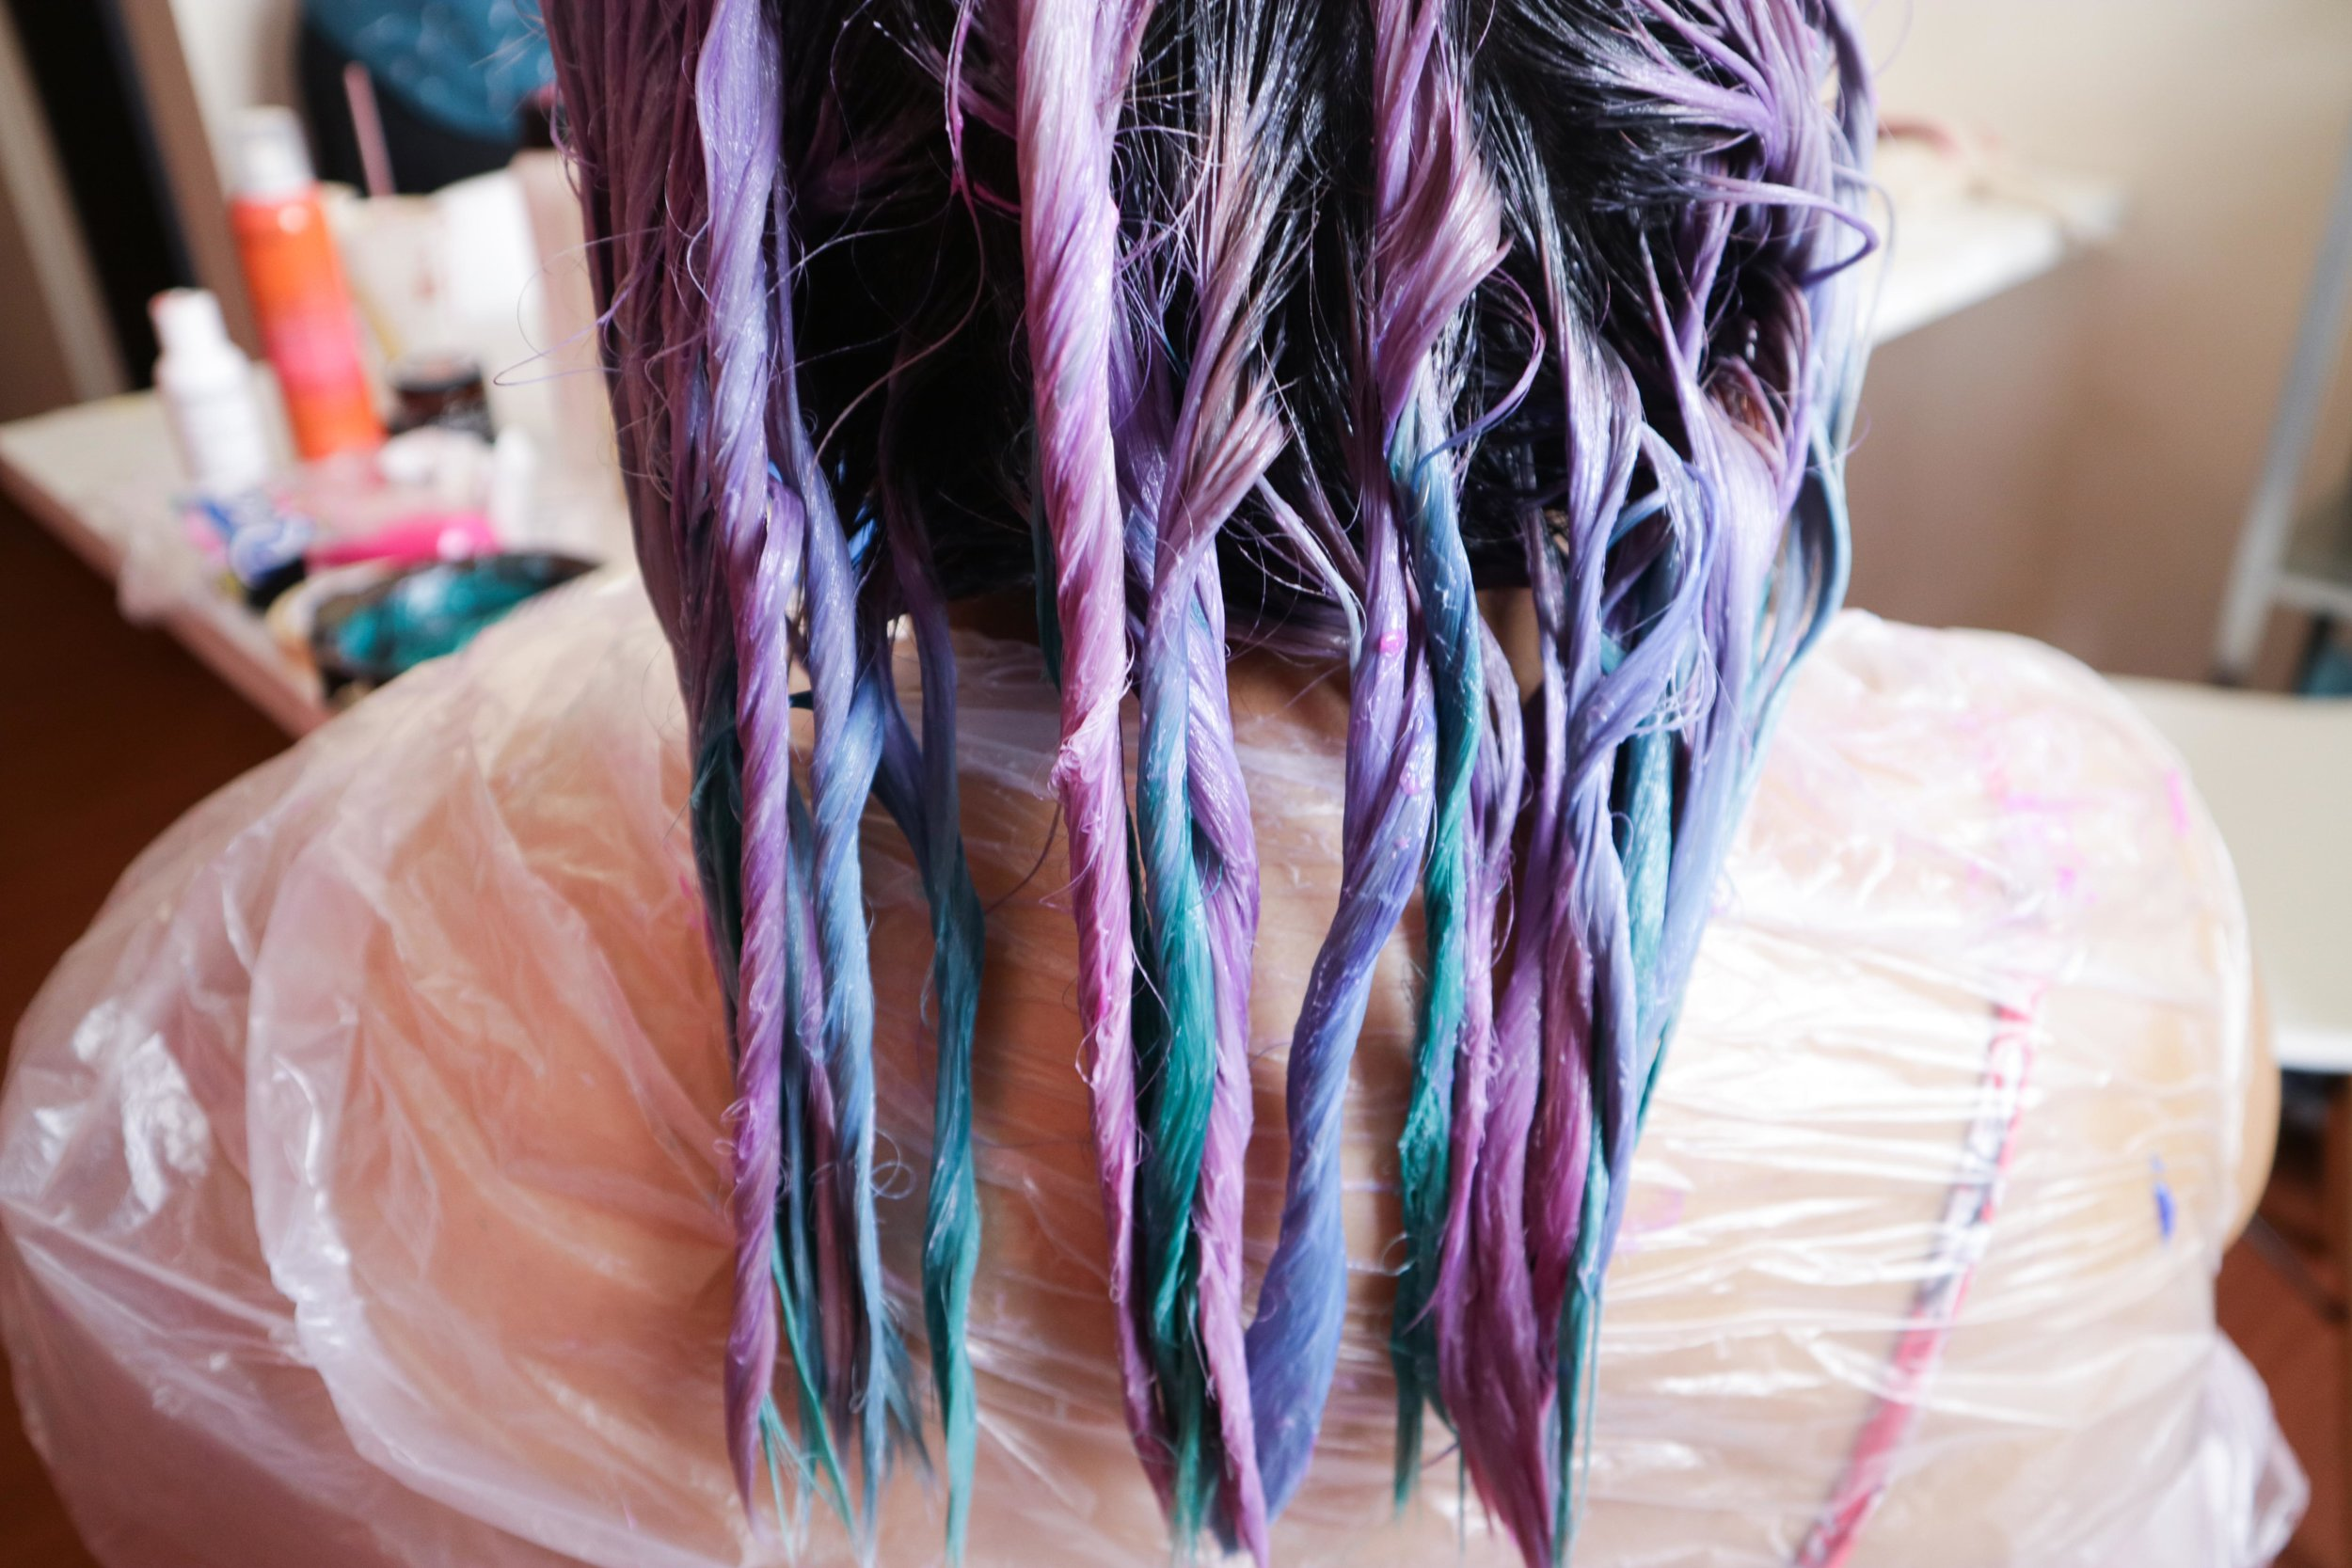 We twisted the strands to keep the strands separate and the dyes from mixing with each other.